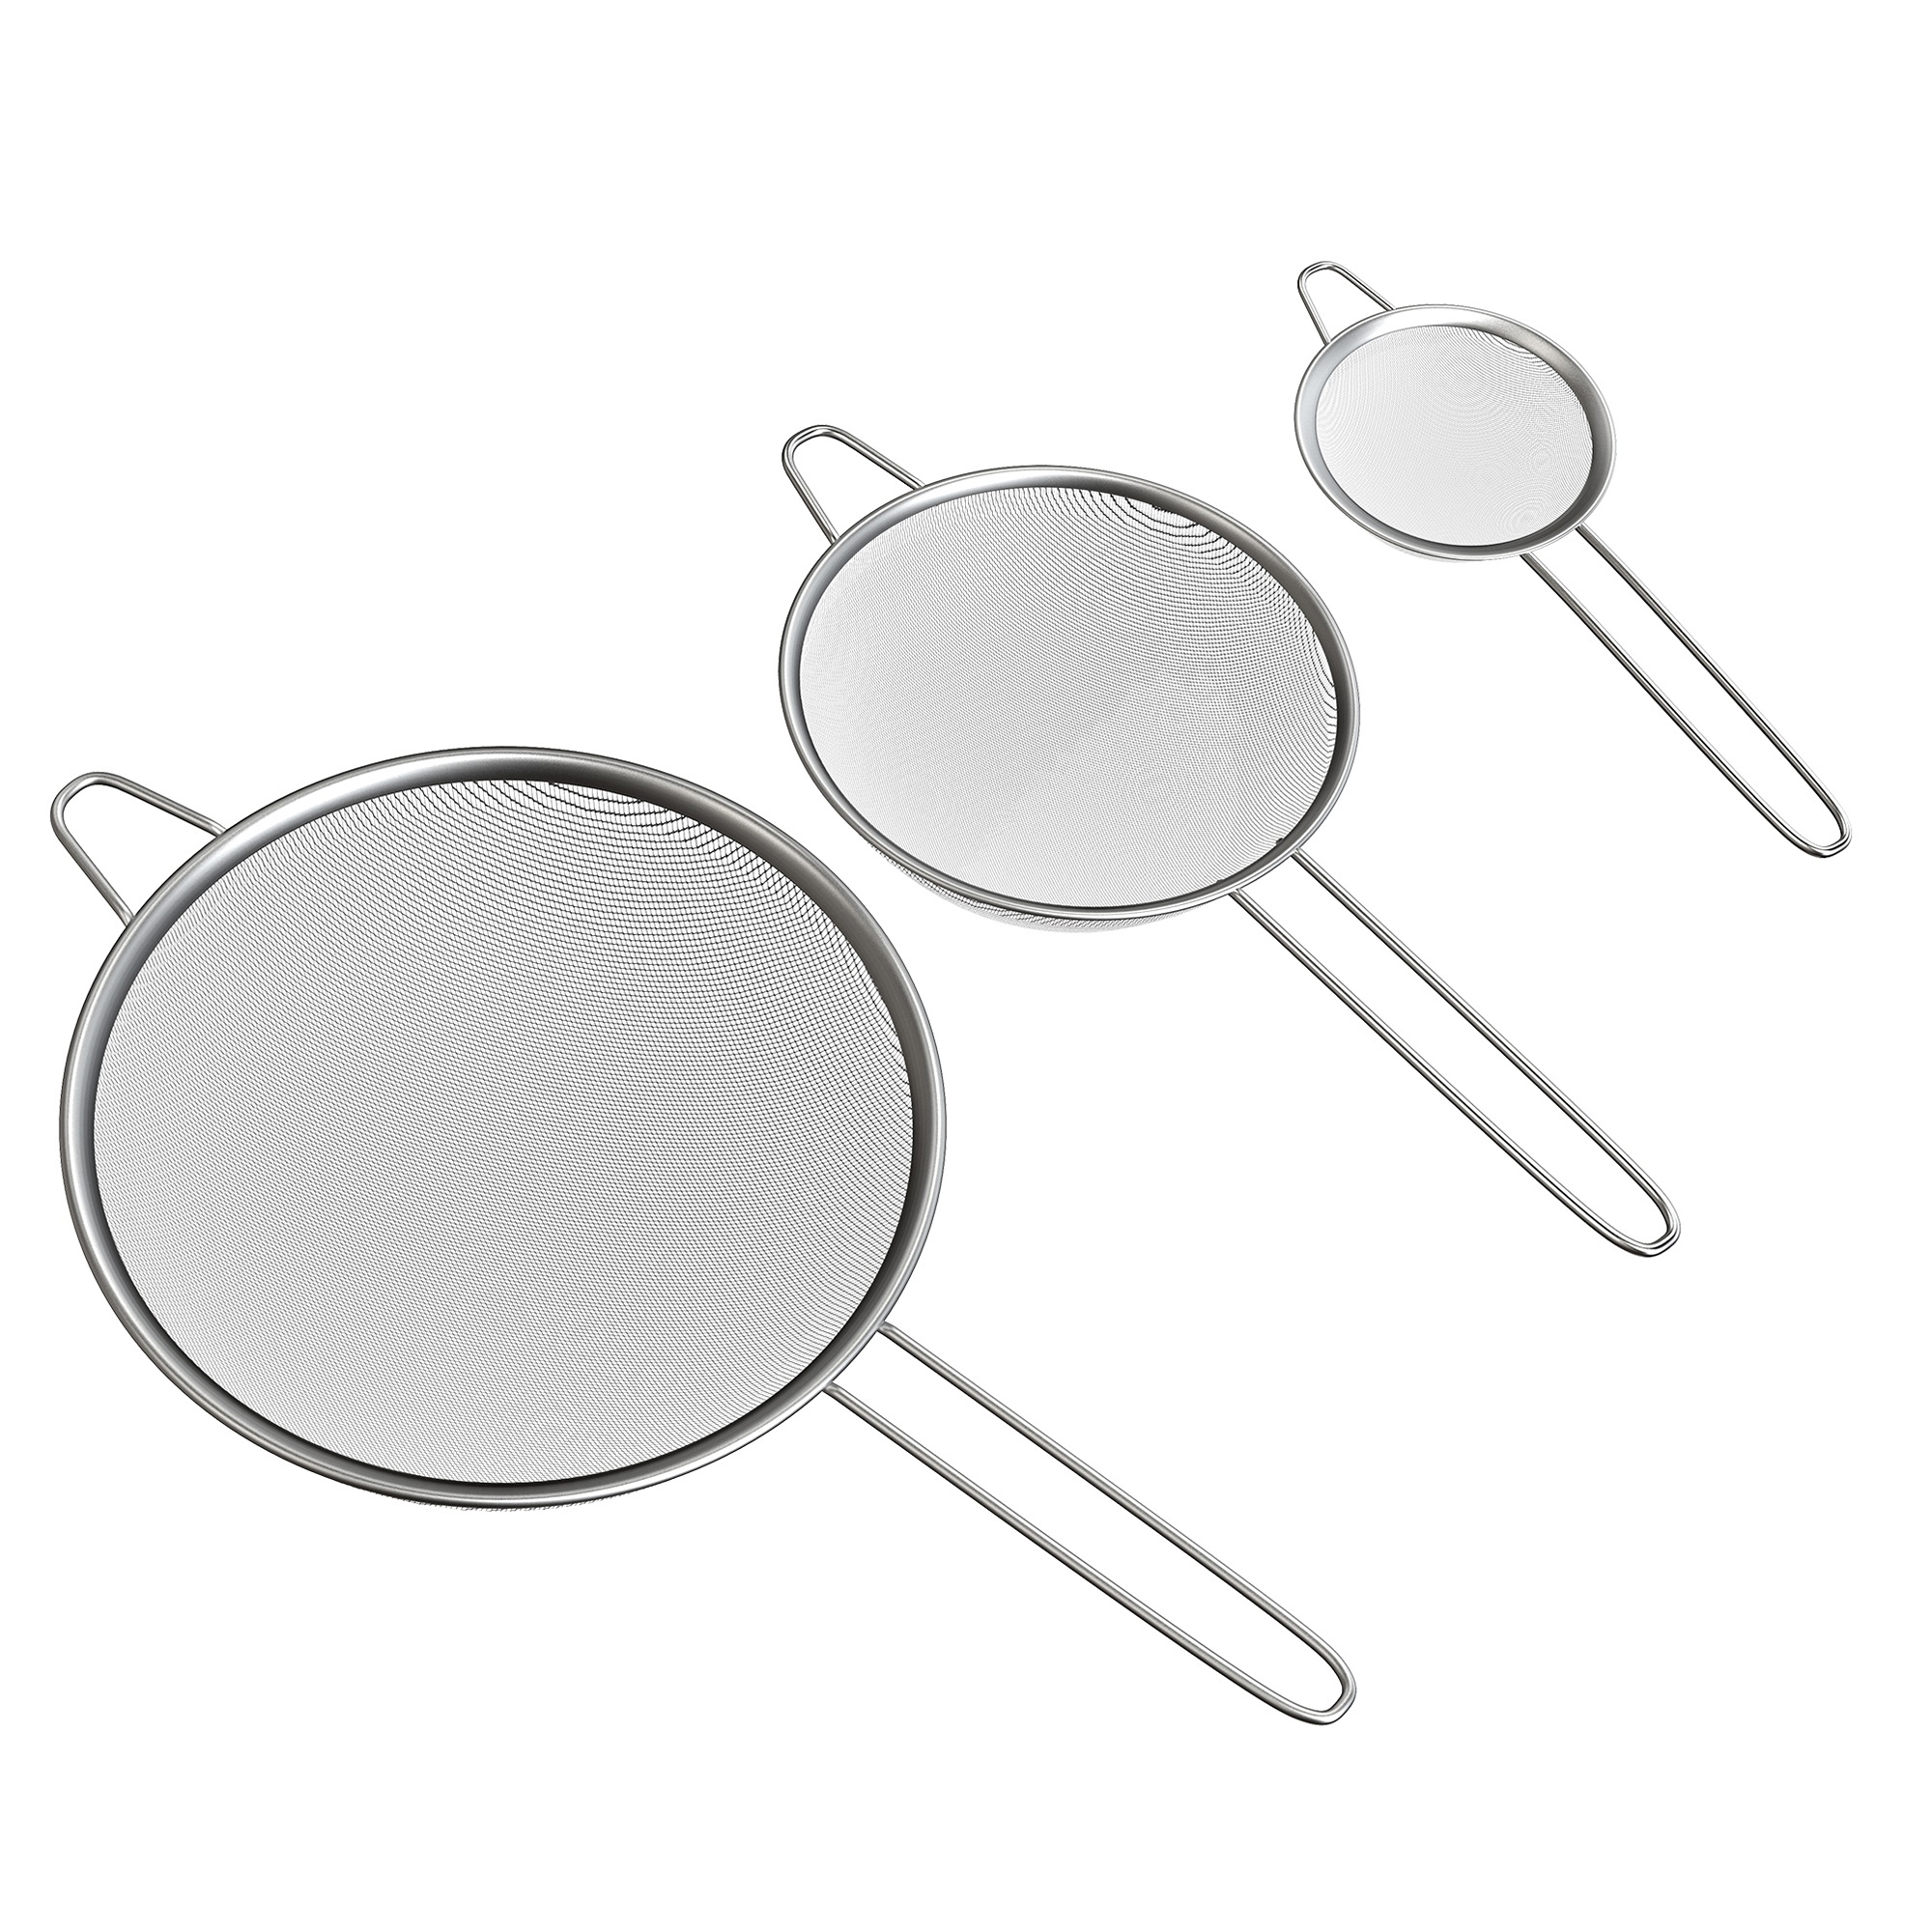 Click here to buy Fine Mesh Strainer Set- Stainless Steel Small, Medium, and Large Colanders for Sifting or Straining Vegetables, Fruit, and Noodles by... by Trademark Global.